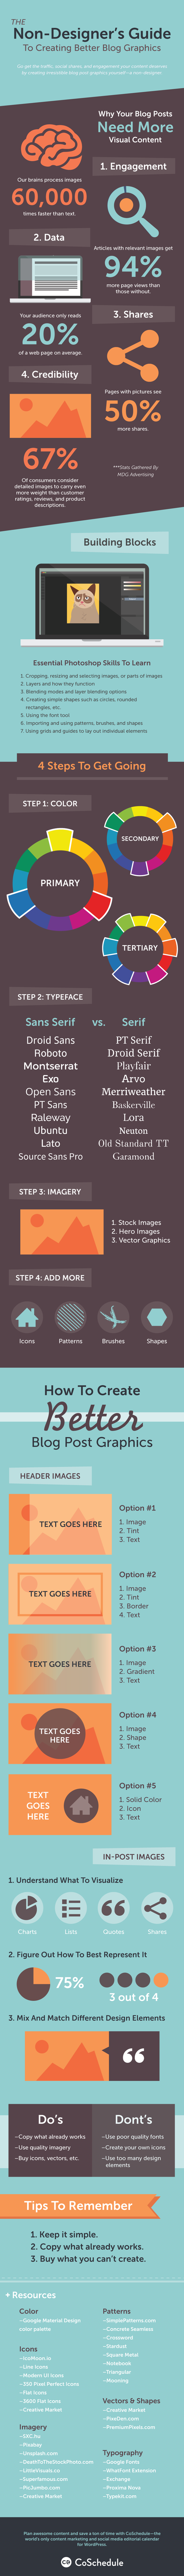 How To Make The Best Blog Graphics (For Non-Designers) - infographic